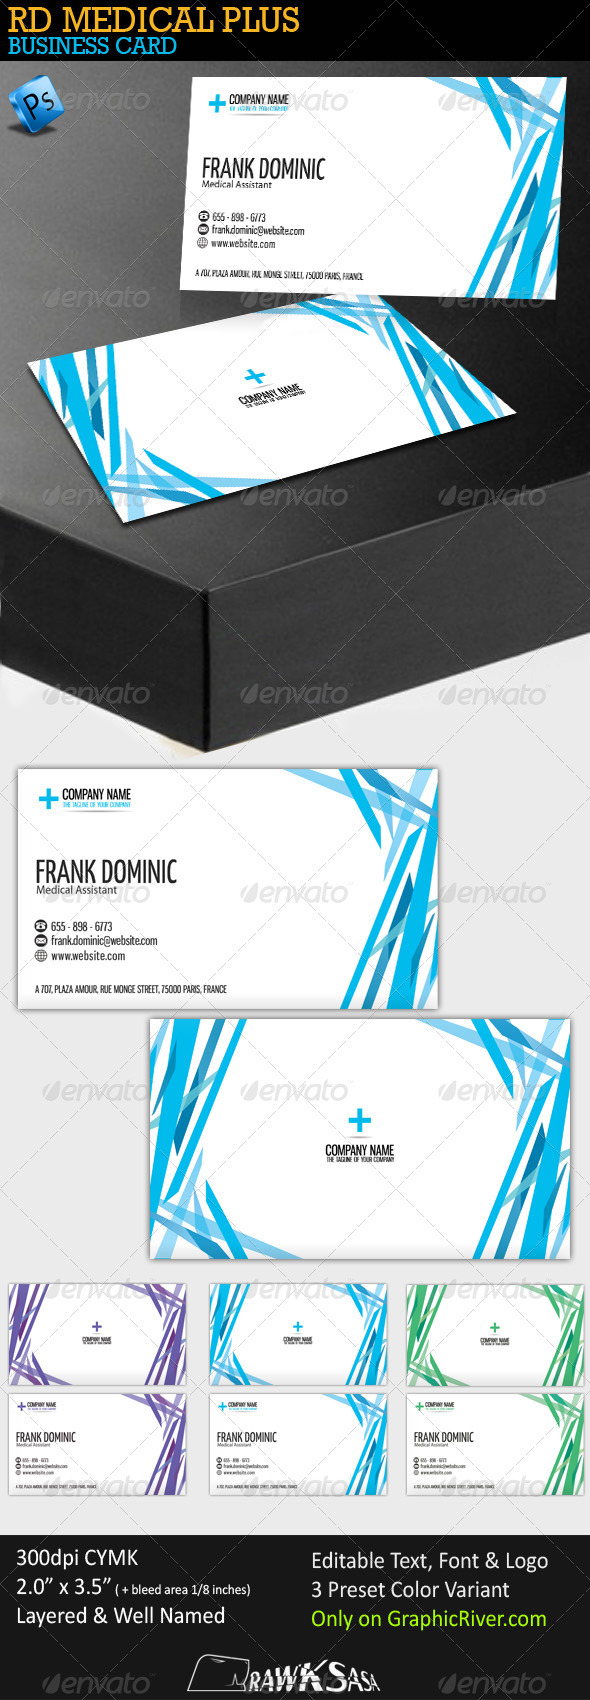 GraphicRiver RD Medical Plus Business Card 247464